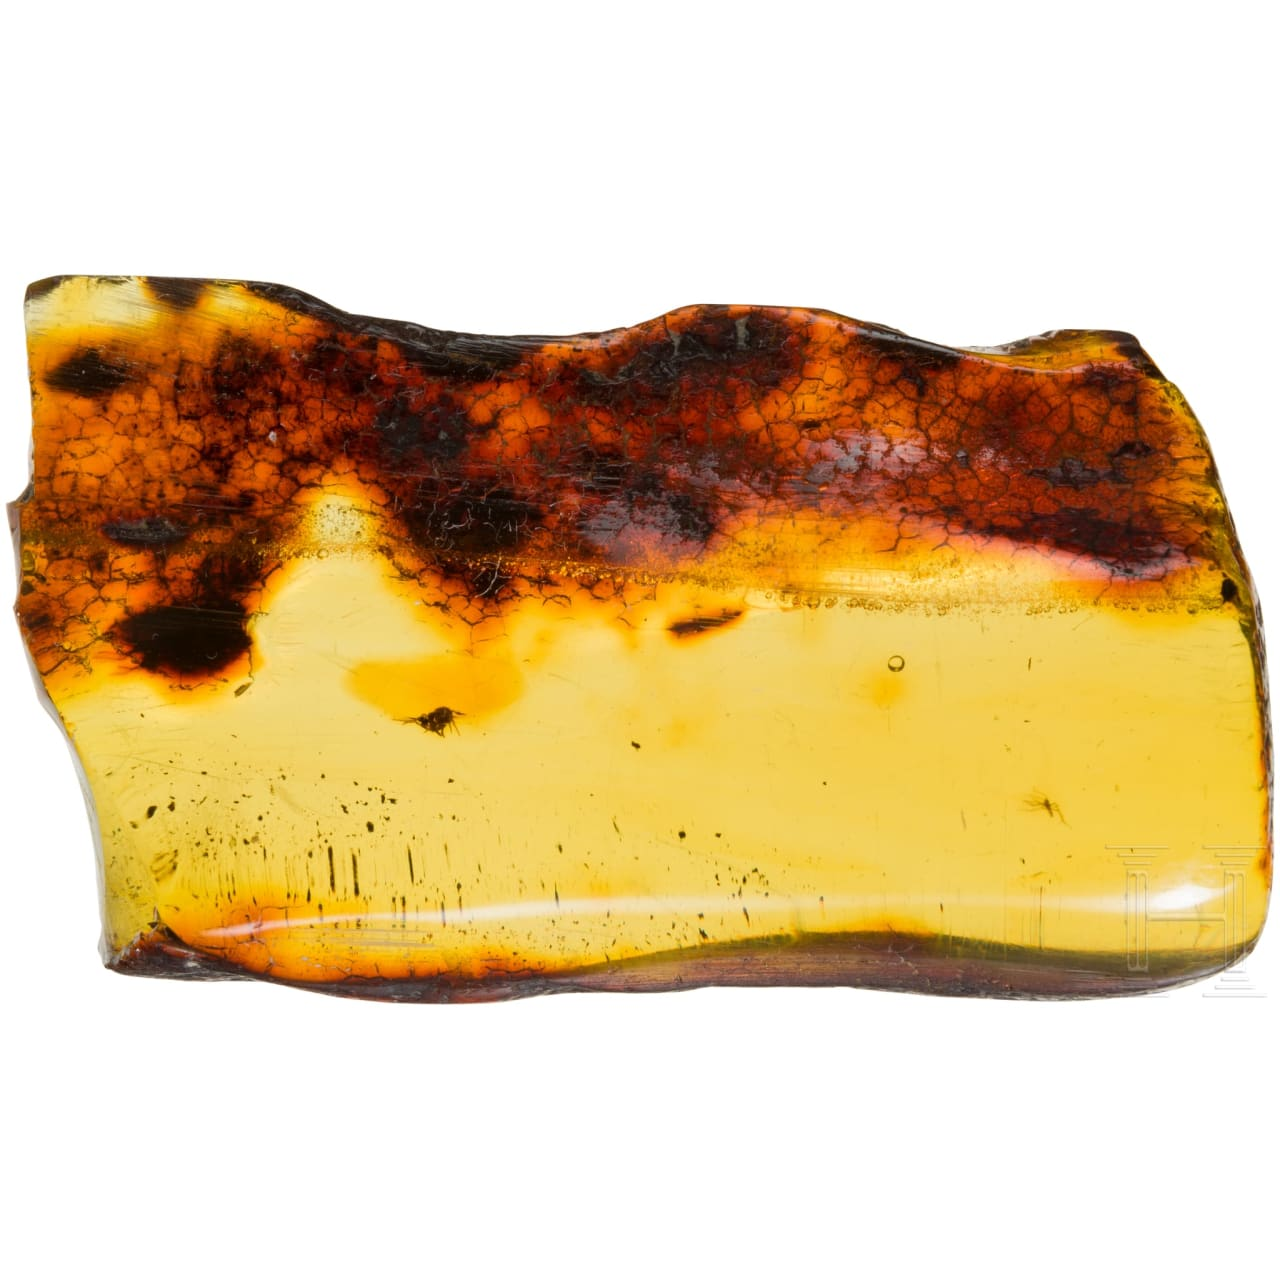 A large amber with inclusions